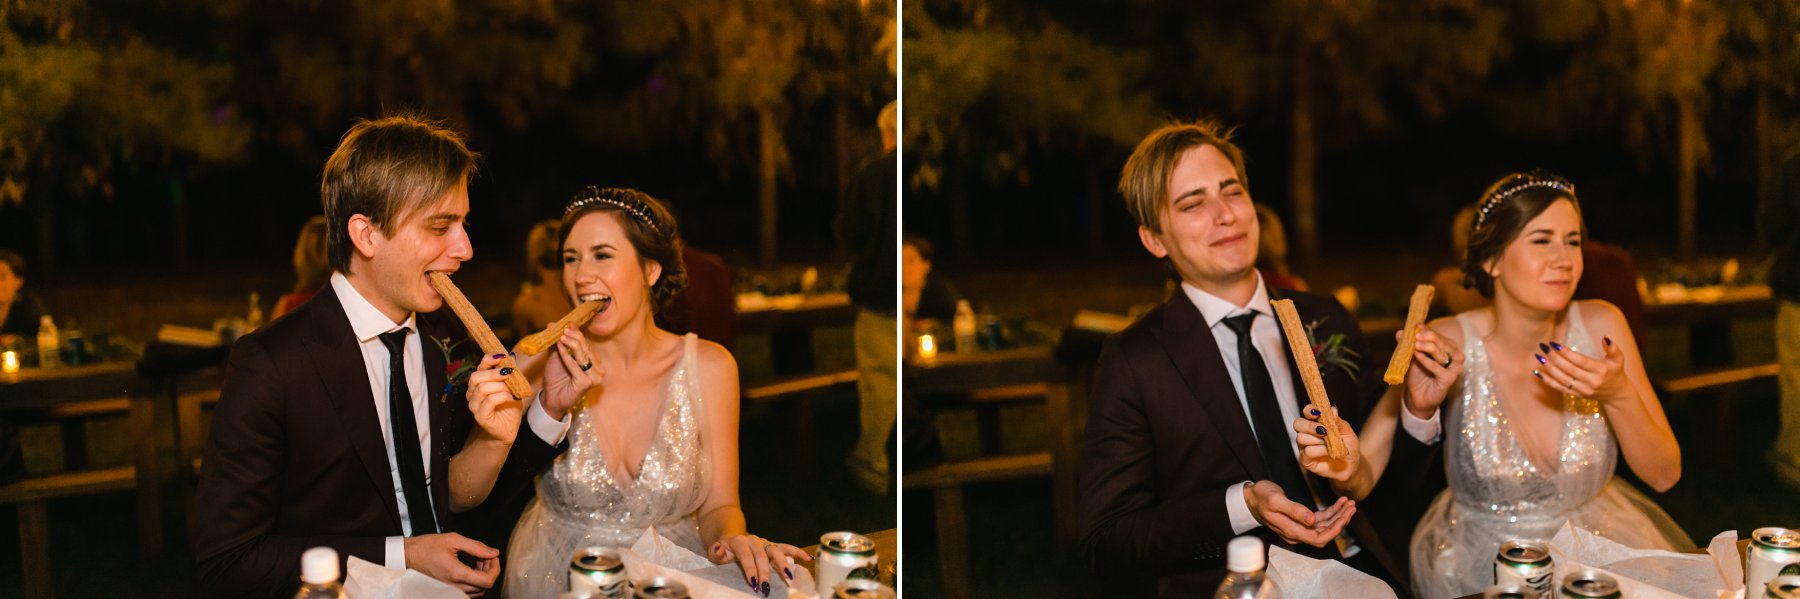 bride & groom eating churros together at wedding Phoenix candid documentary photographer